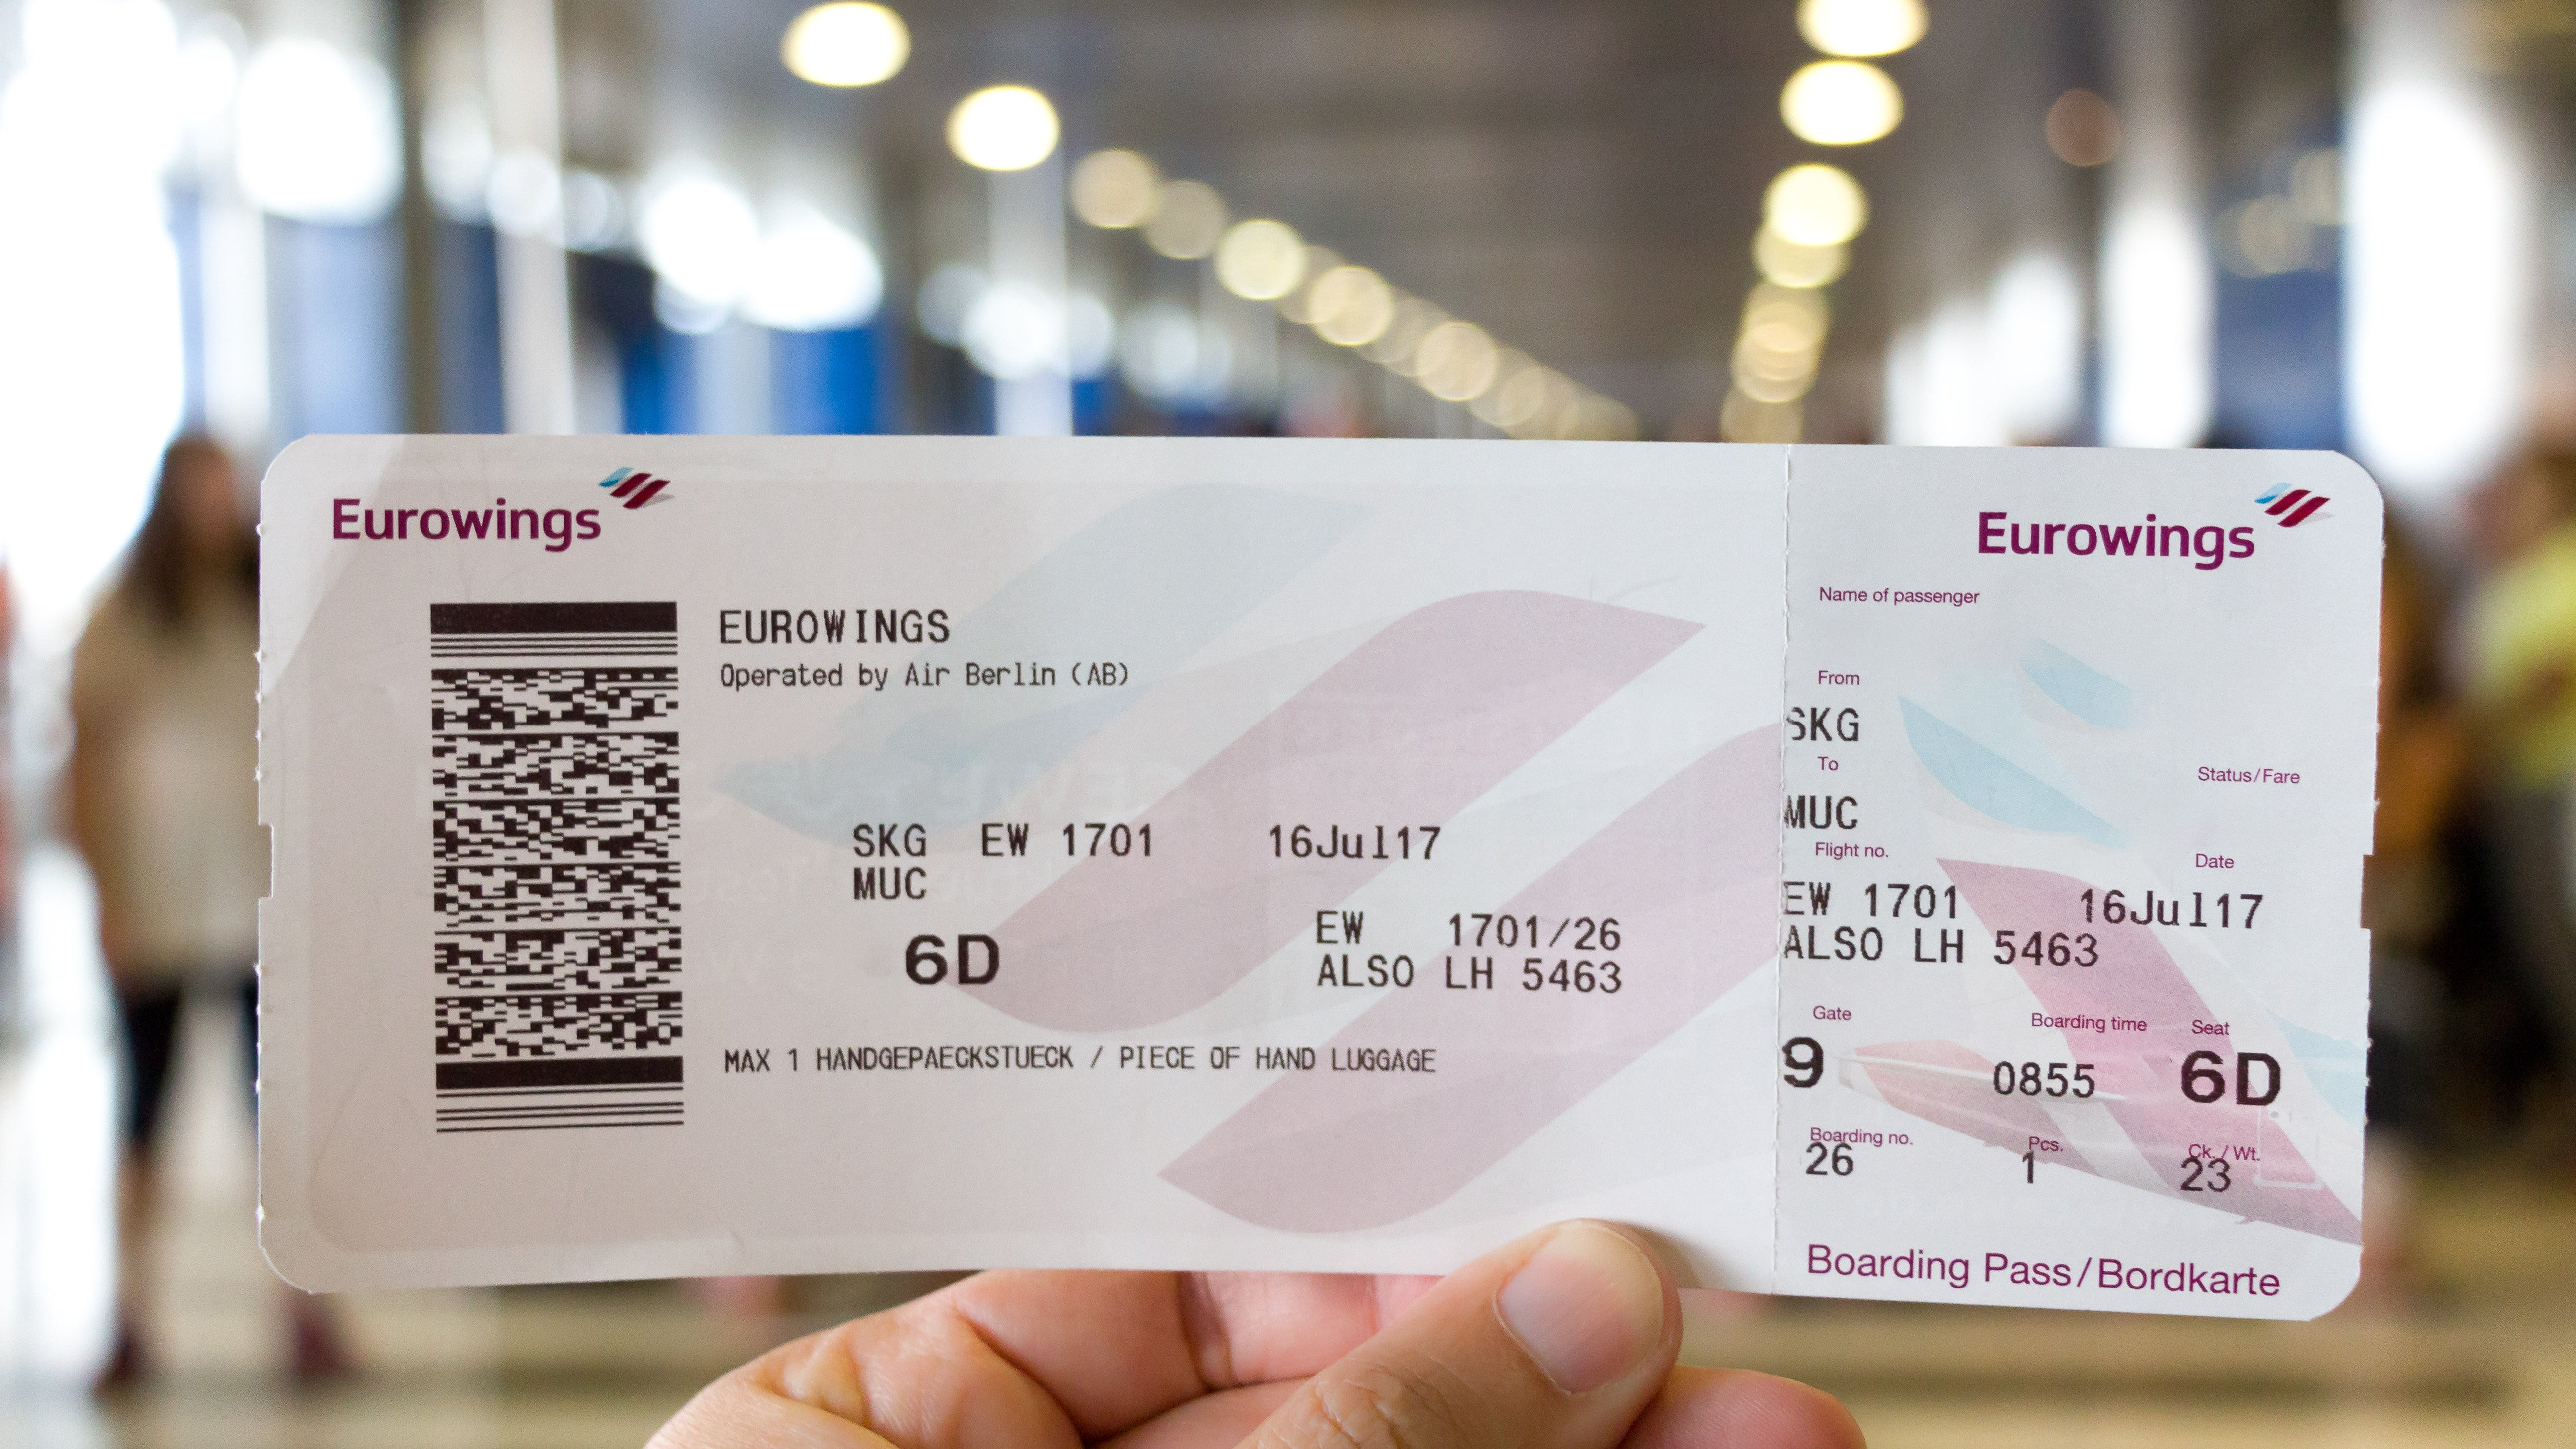 Make Sure Your Flight Reservation Is Ticketed Before You Travel